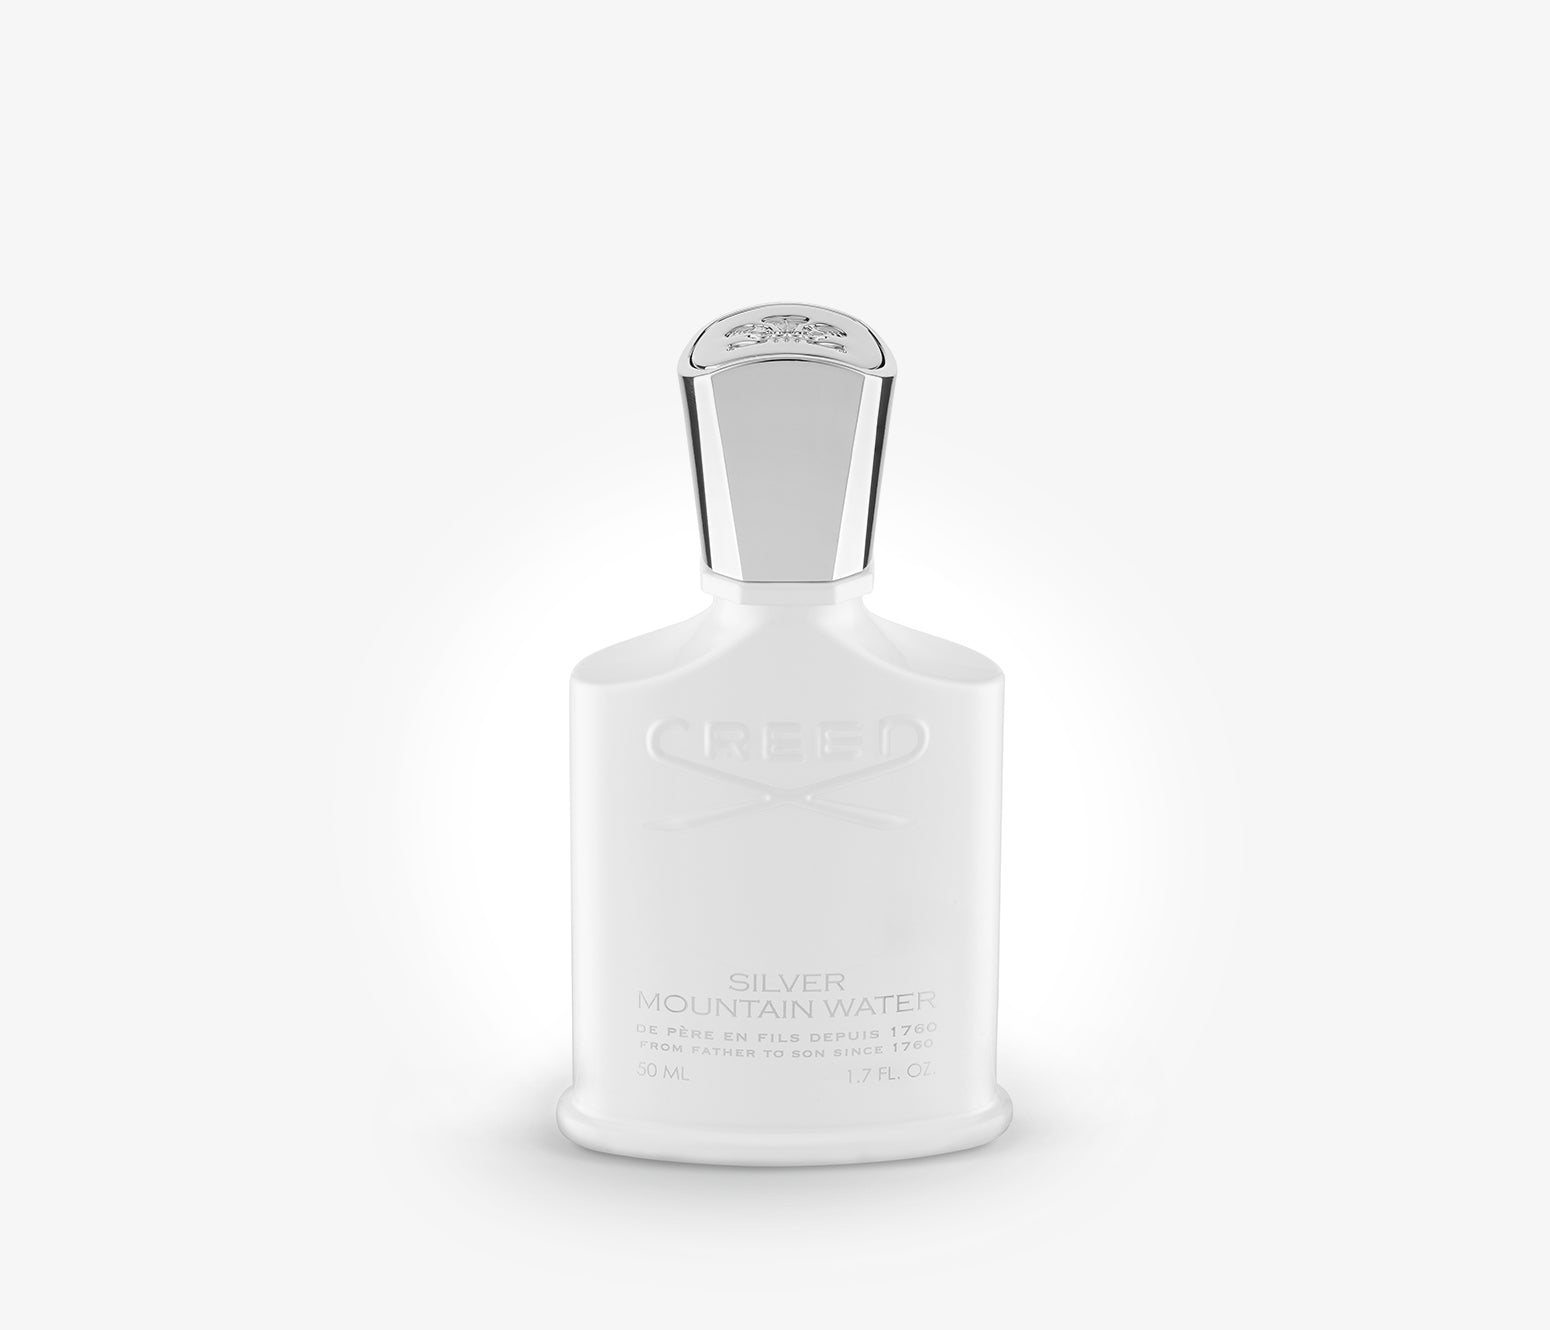 Creed - Silver Mountain Water - 50ml - NMB001 - Product Image - Fragrance - Les Senteurs